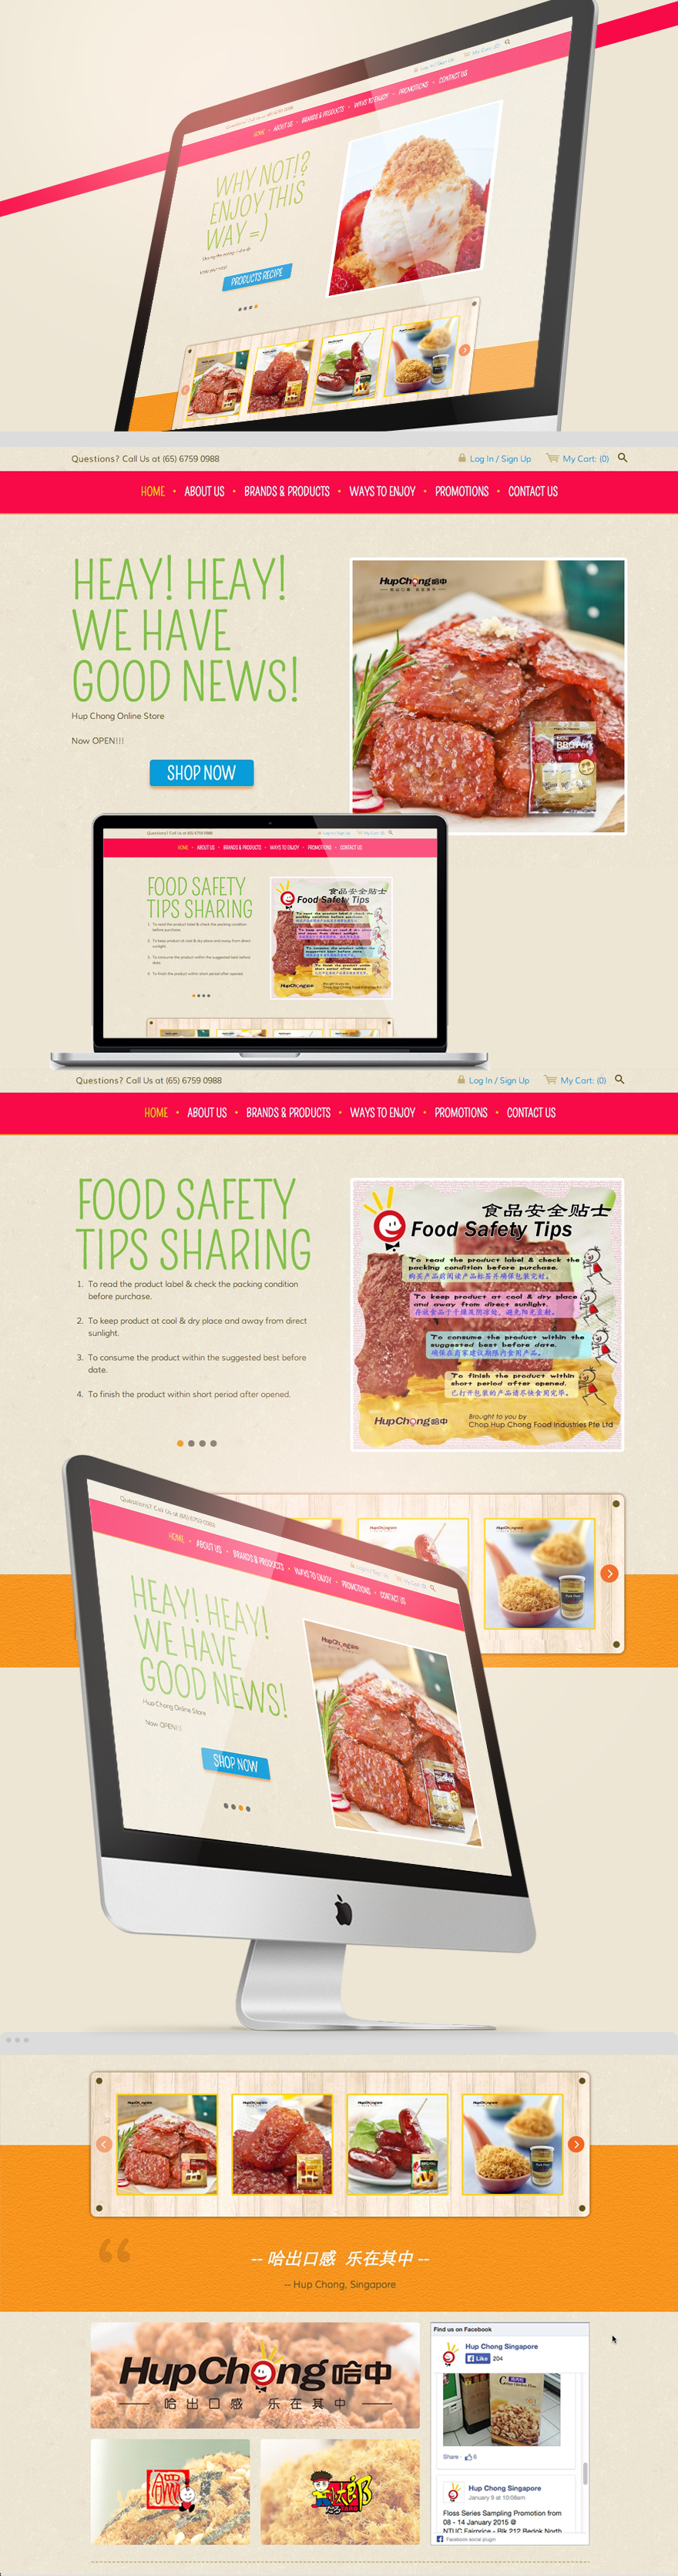 Projects - Chop Hup Chong Food Industries